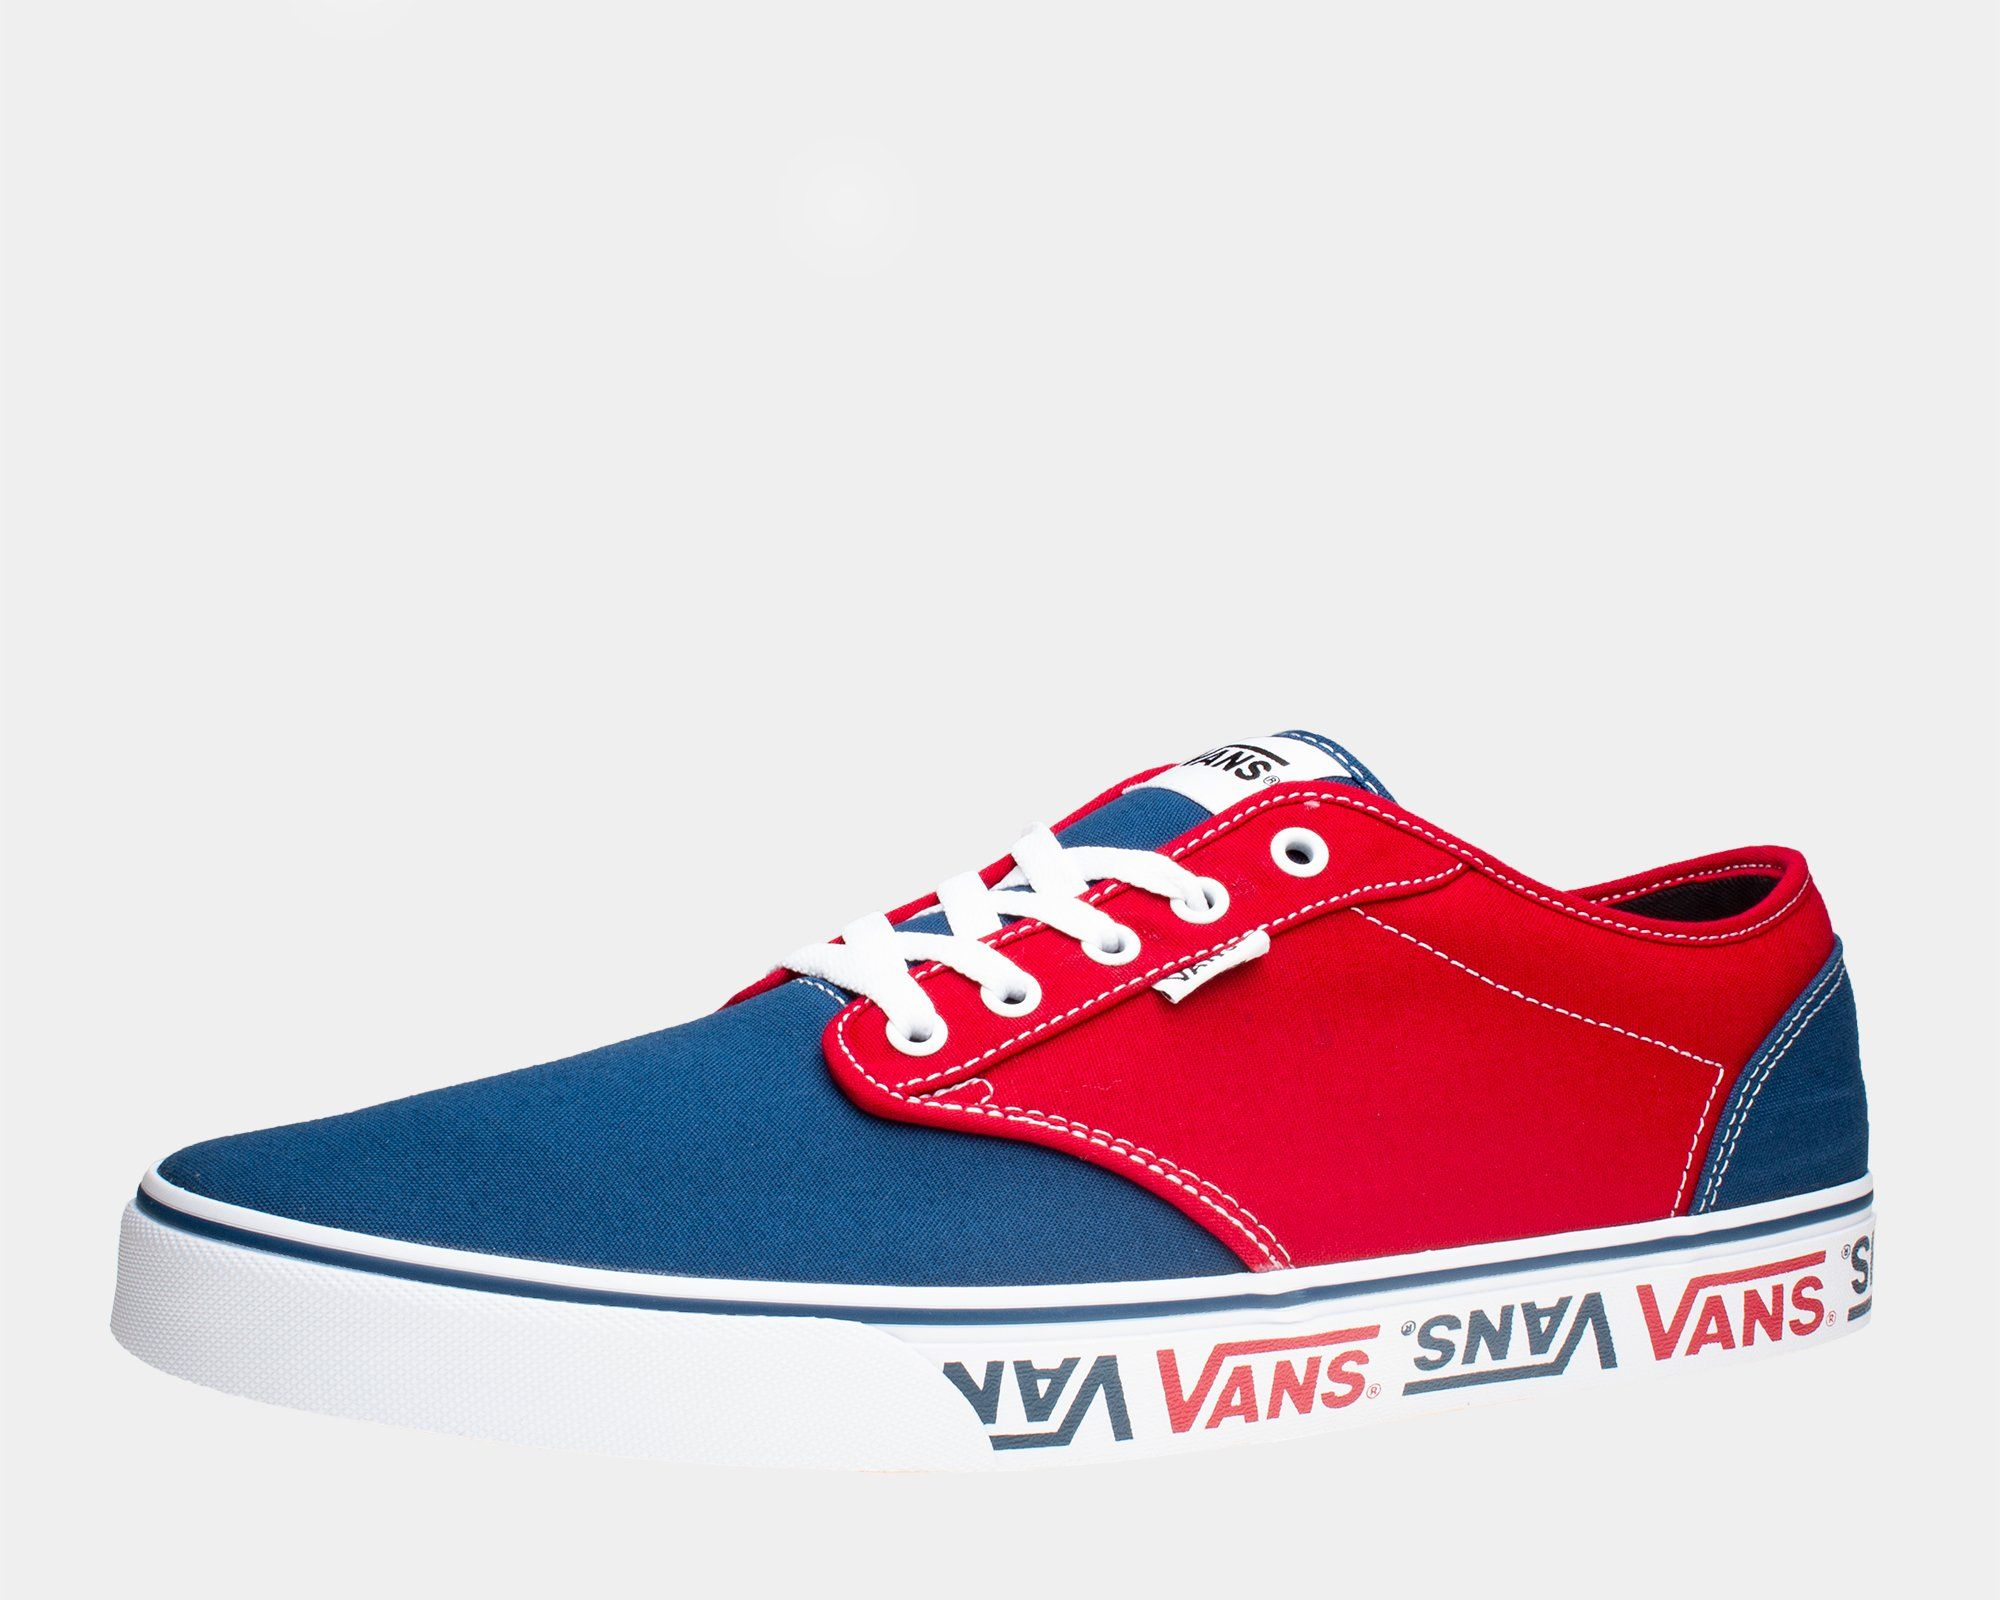 4cd99564de Vans Atwood (Sidewall Logo) Salior Blue Mens sizes 14   up big shoes for  big men international shipping available